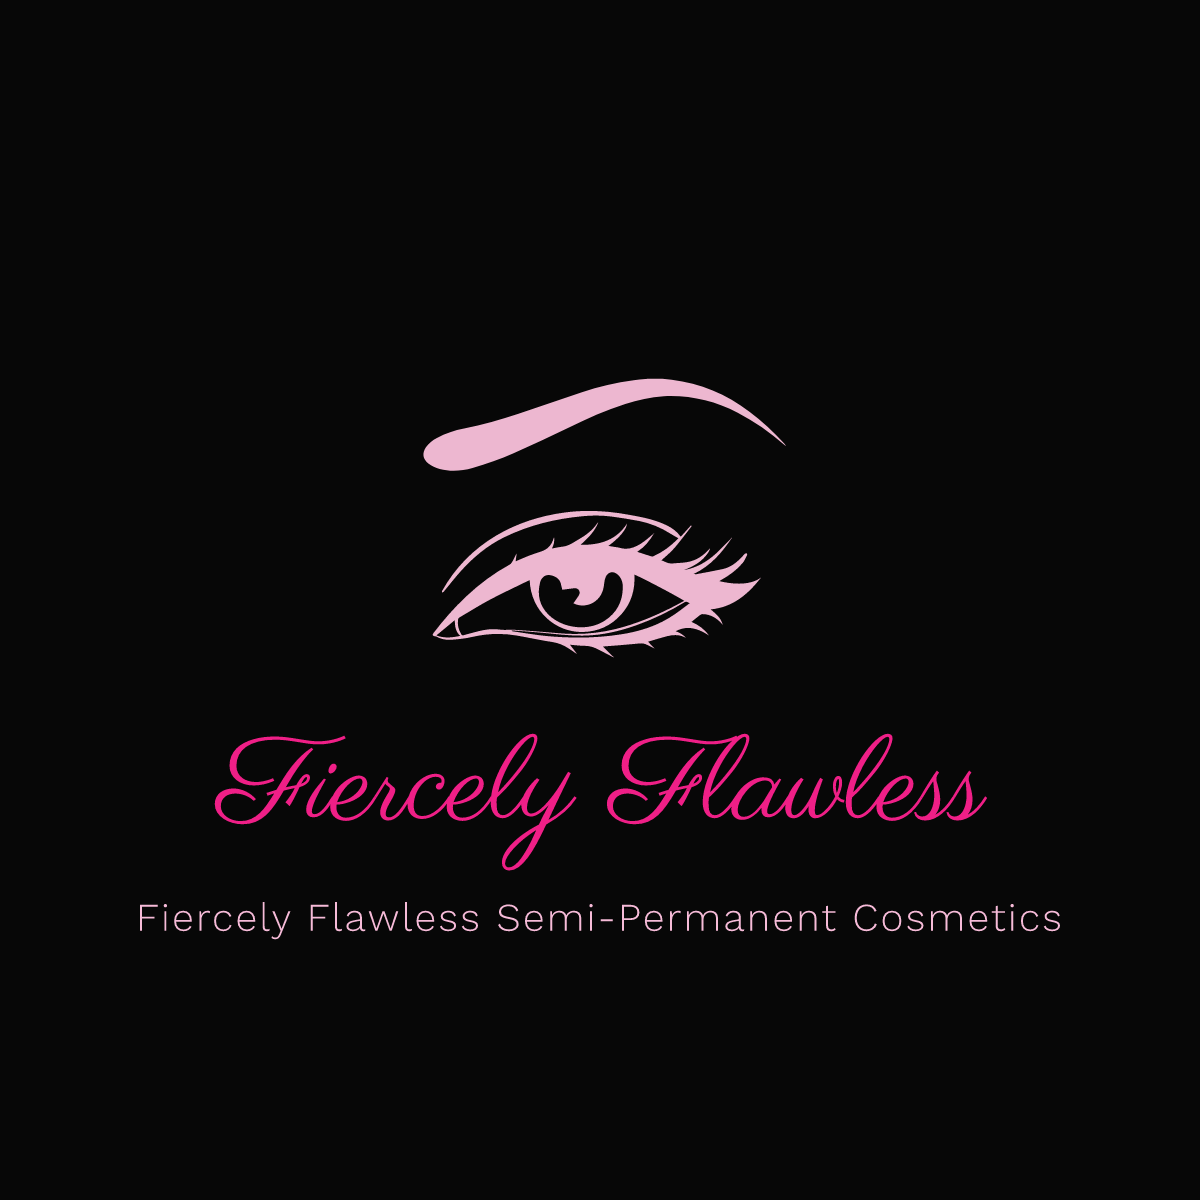 Welcome to Fiercely Flawless